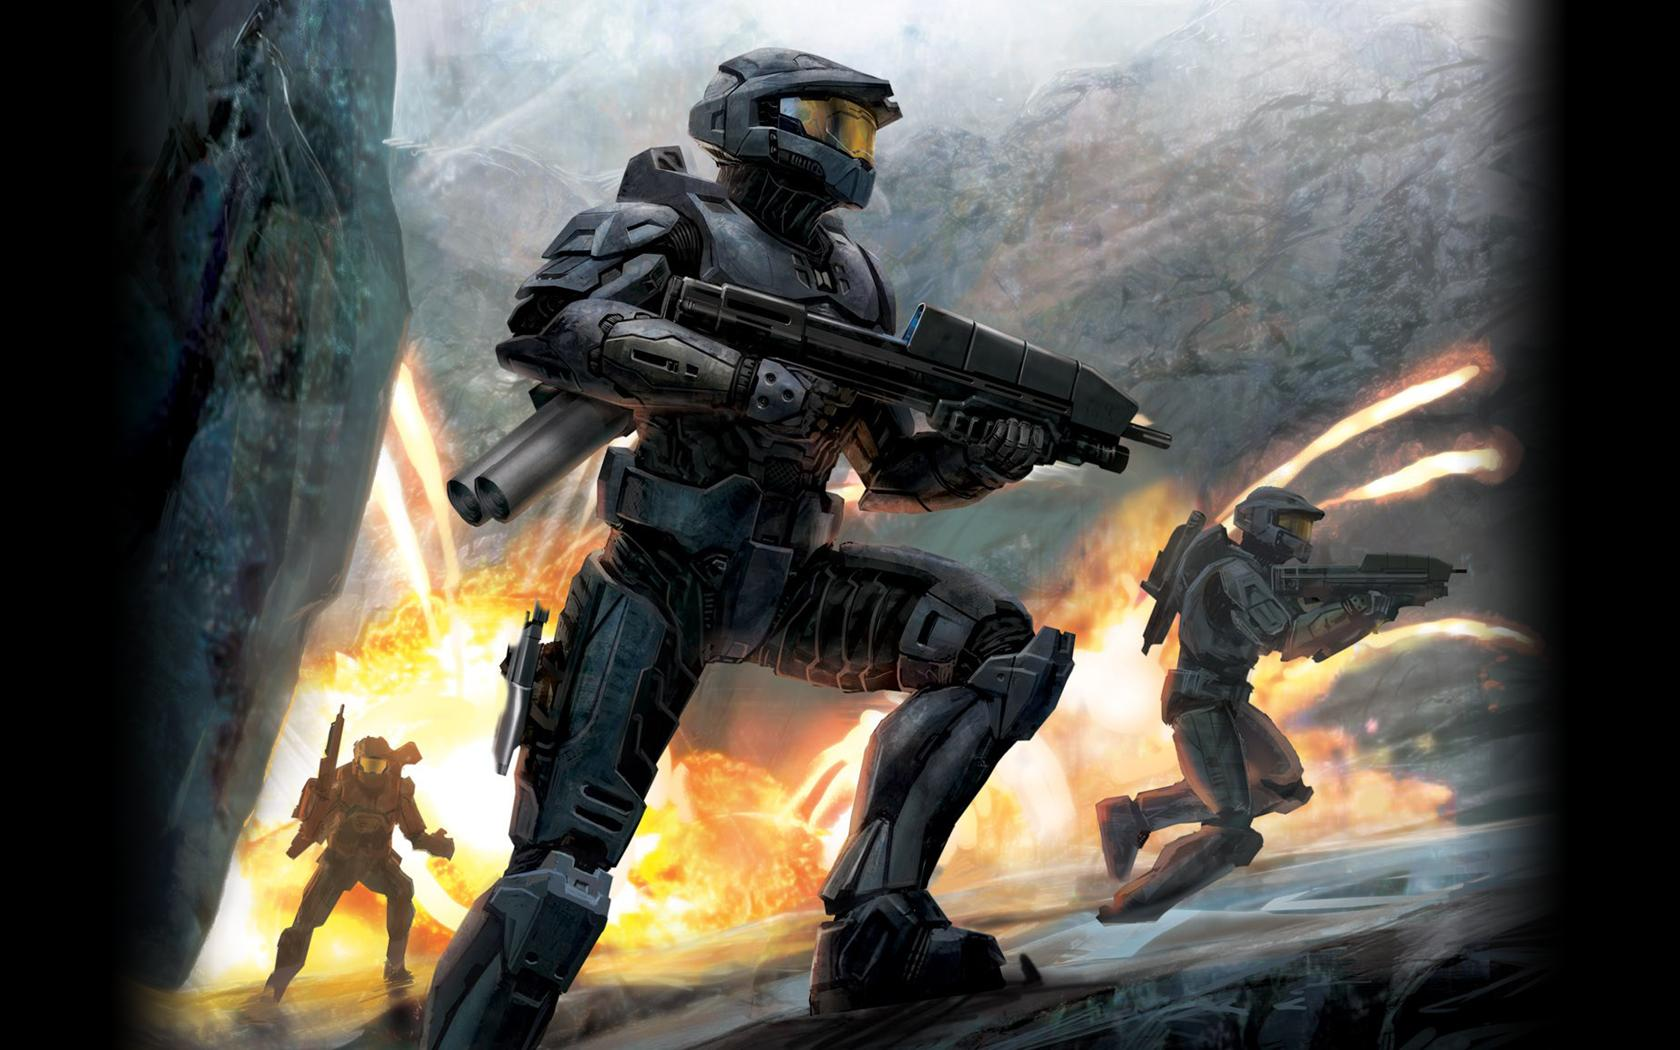 Video Game - Halo  - Fighter Wallpaper